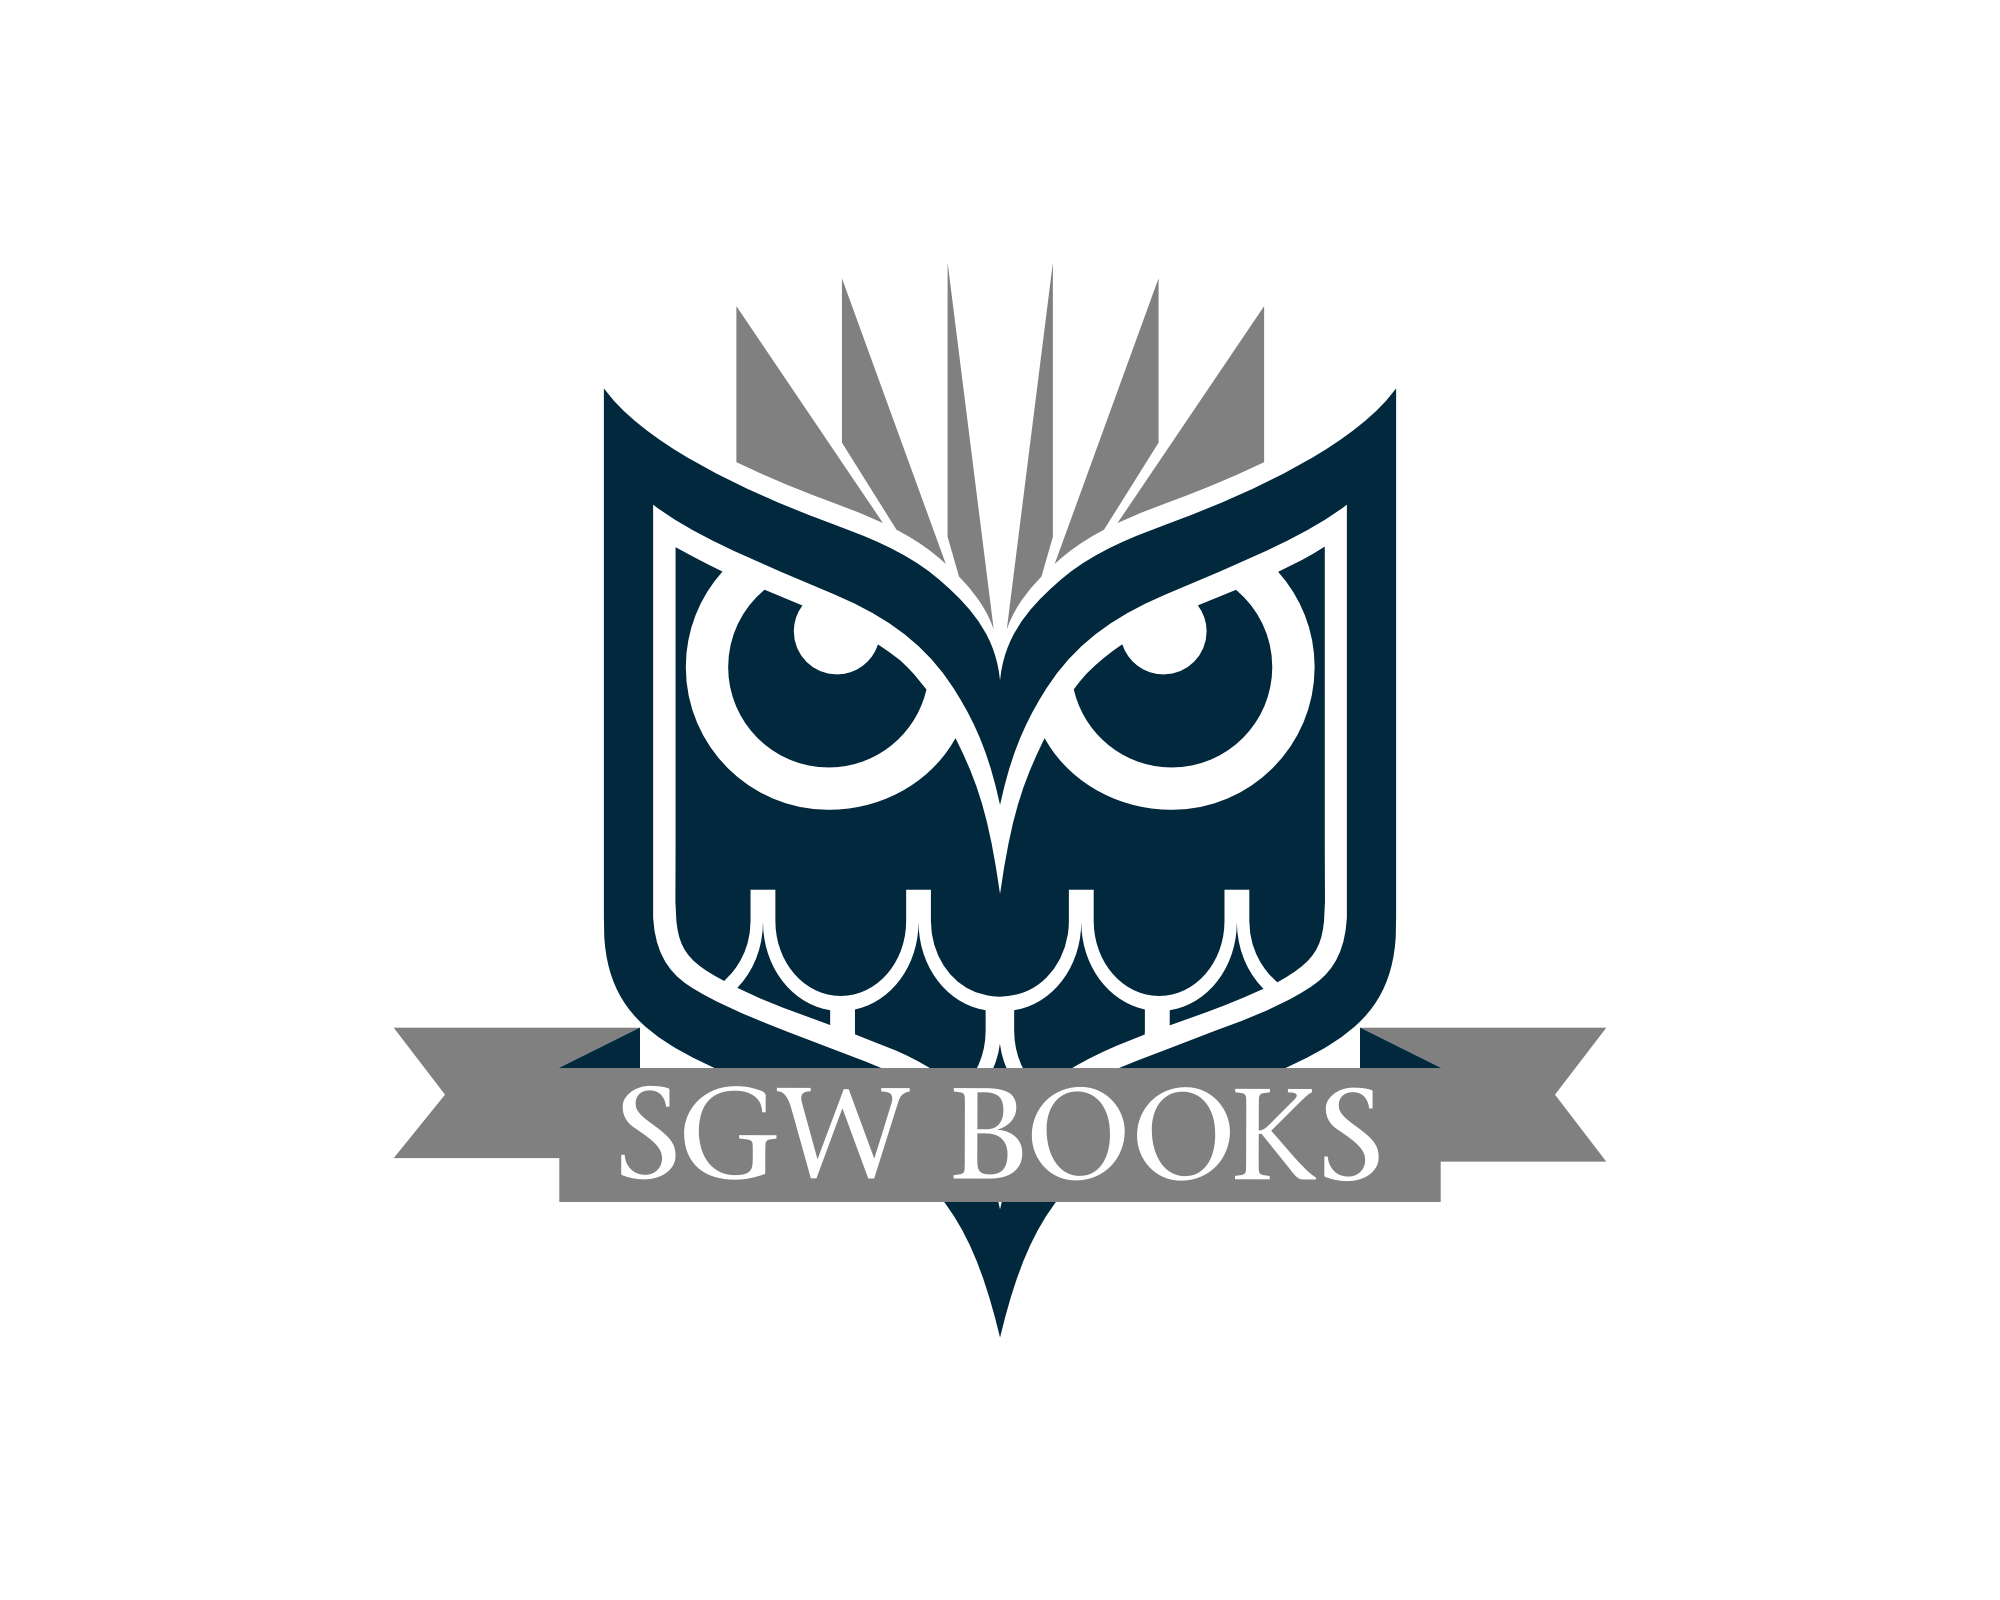 Logo Design by explogos - Entry No. 79 in the Logo Design Contest SGW Books Logo Design.